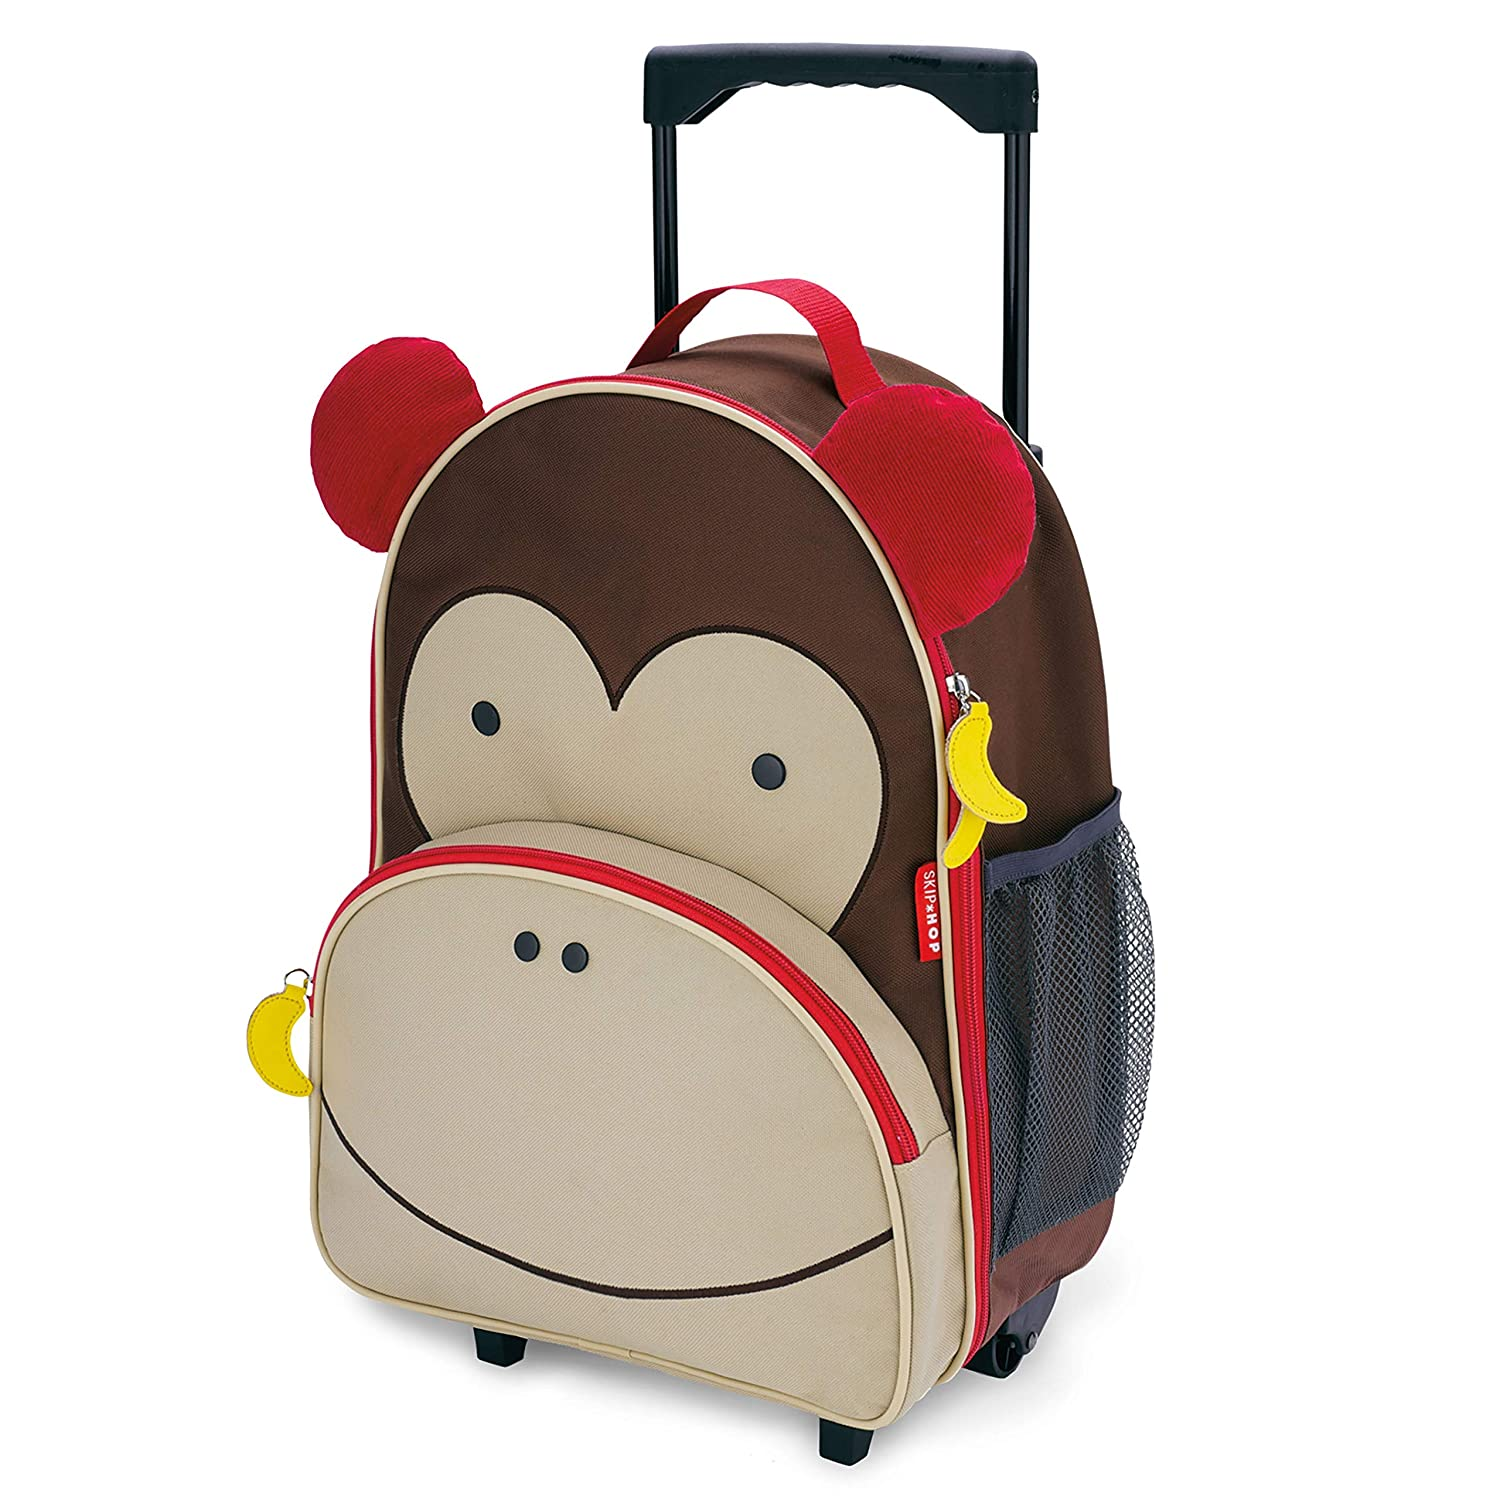 Top 10 Best Kids Luggage Parents Should Know (2020 Reviews) 2